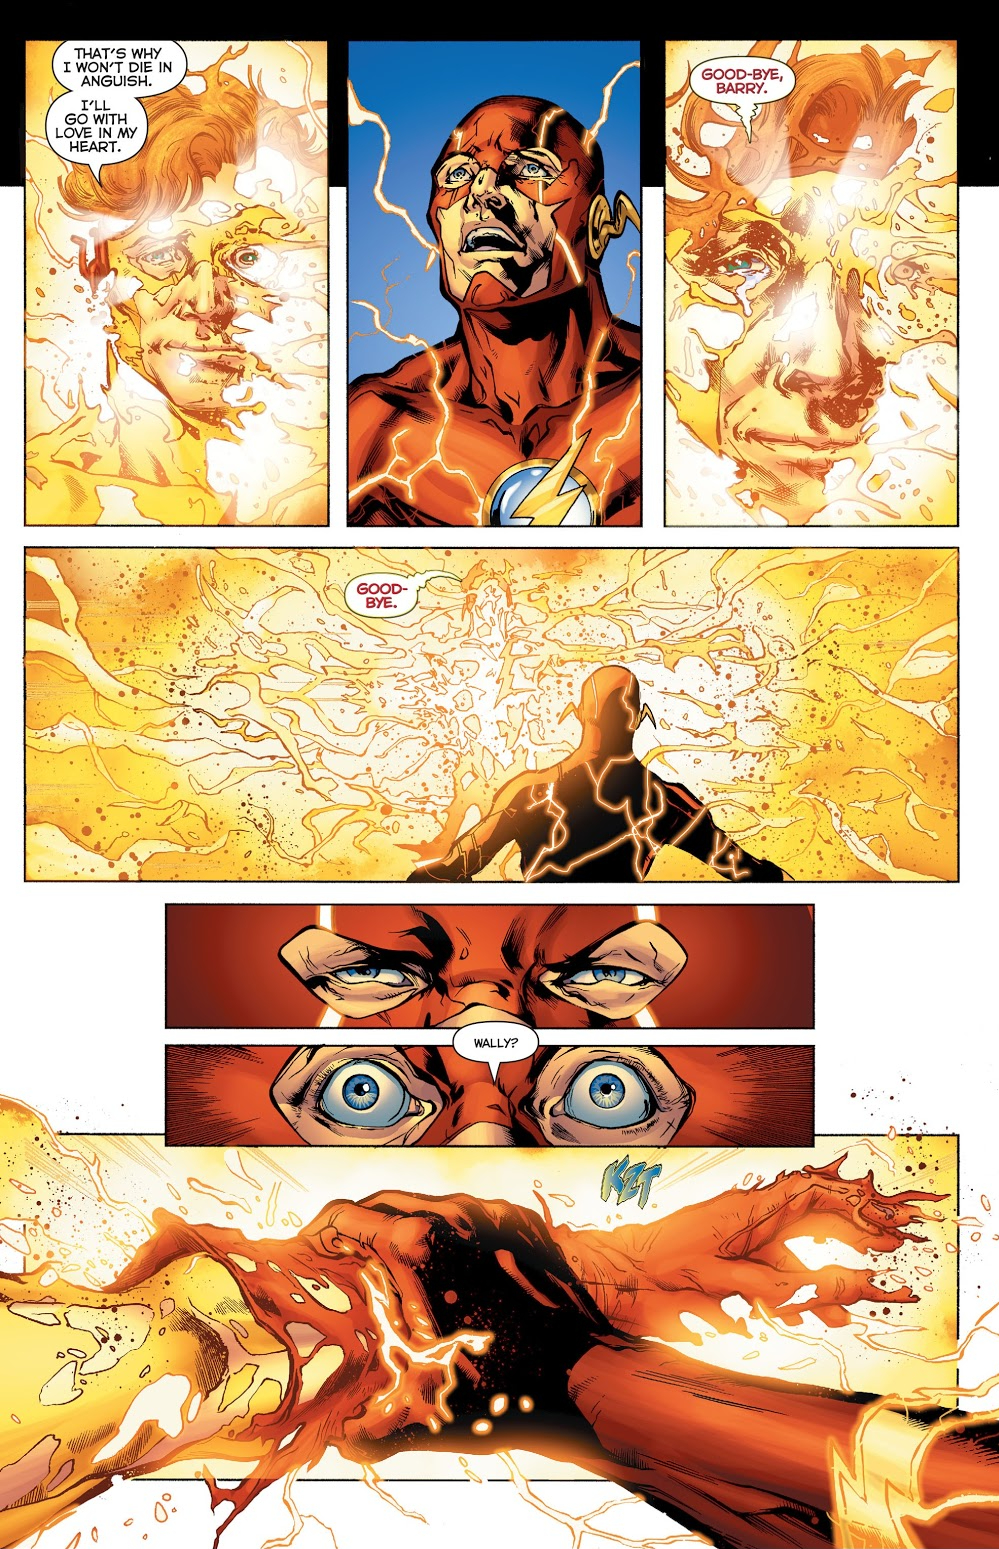 In 'DC Universe: Rebirth,' Barry Allen recognizes Wally West as he is about to vanish from the Speed Force.